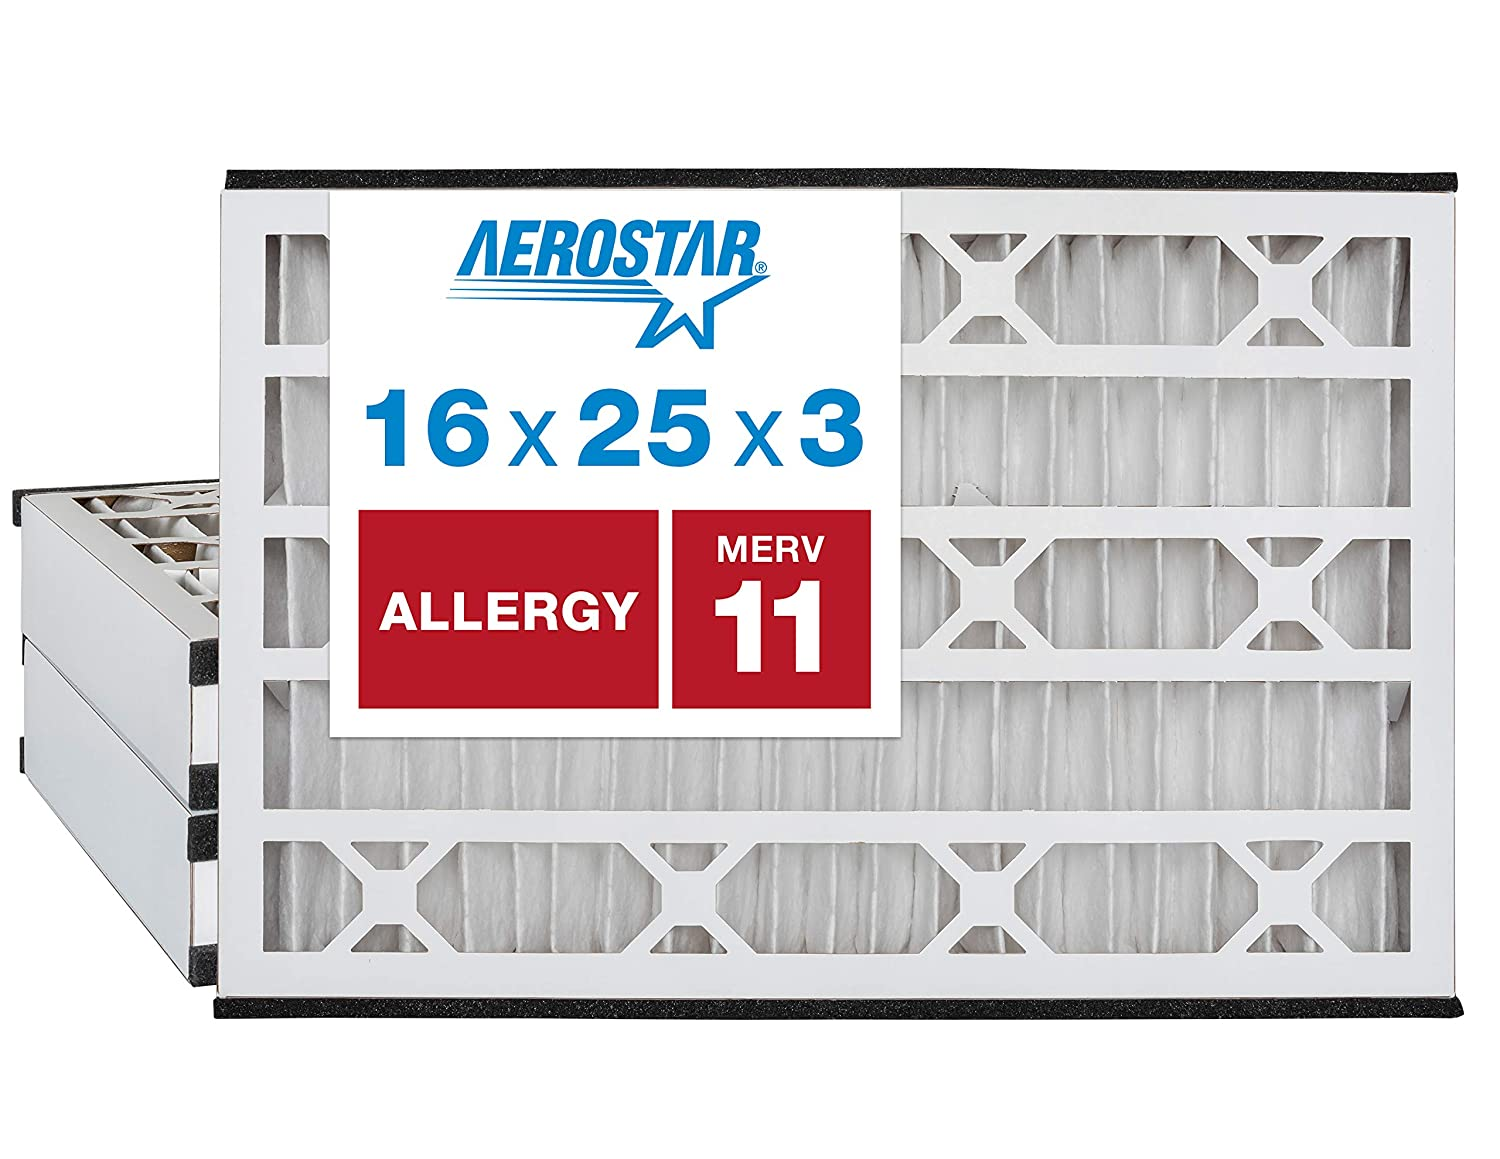 Aerostar Allergen & Pet Dander 16x25x3 MERV 11 Air Bear Replacement Pleated Air Filter, Made in the USA, 3-Pack